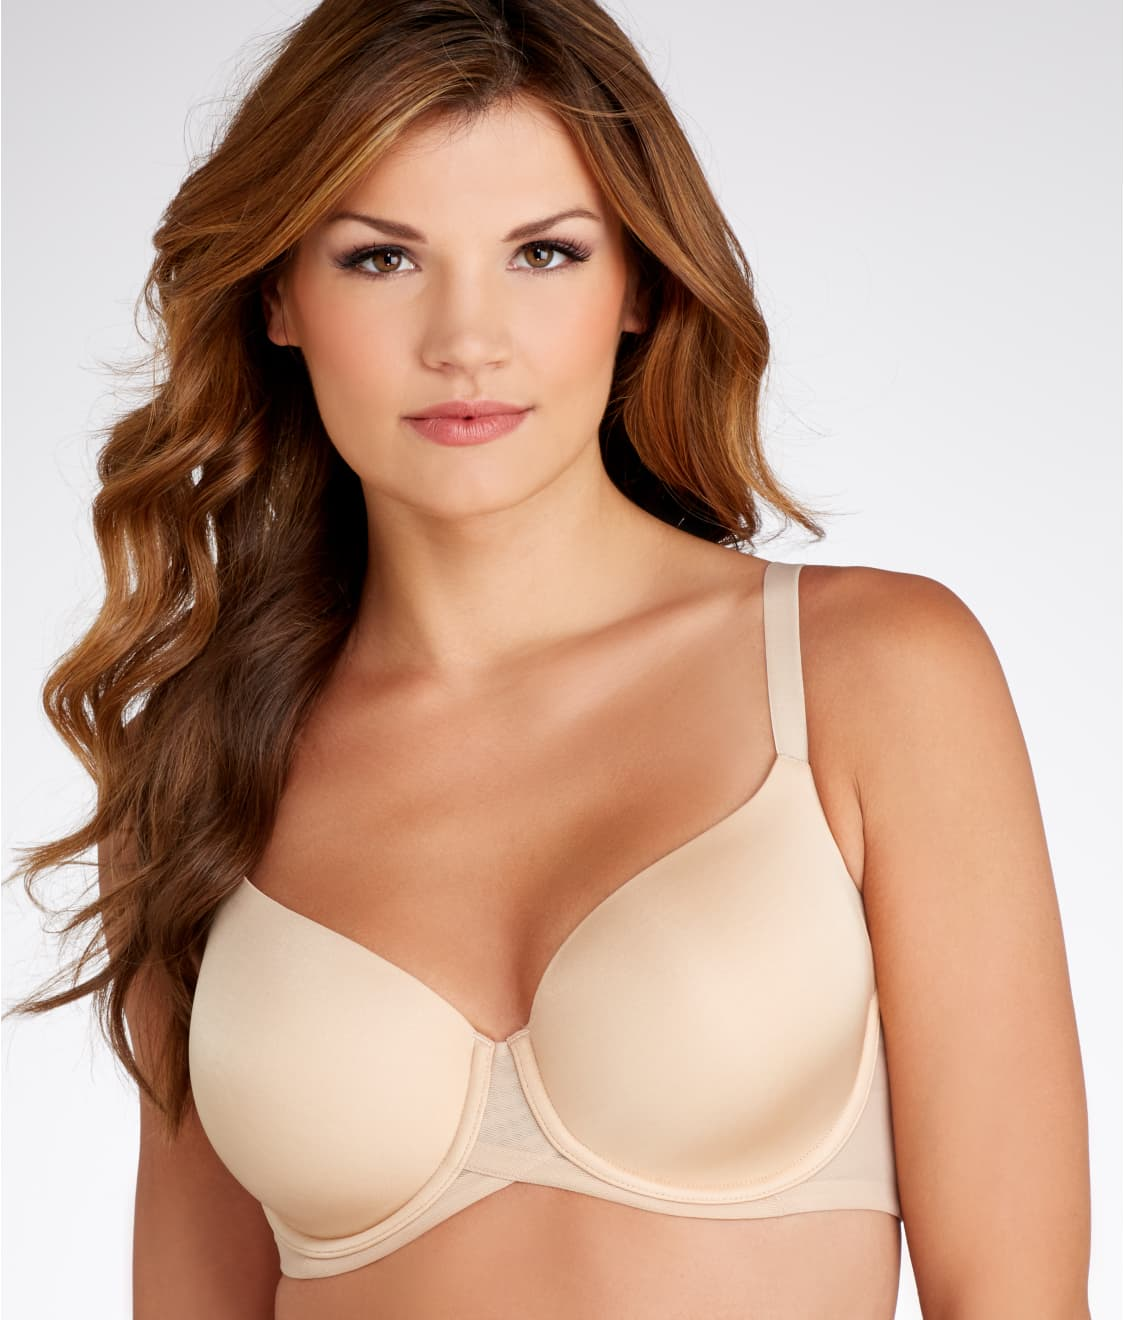 b4a8c3079b0bb Wacoal Ultimate Side Smoother Bra